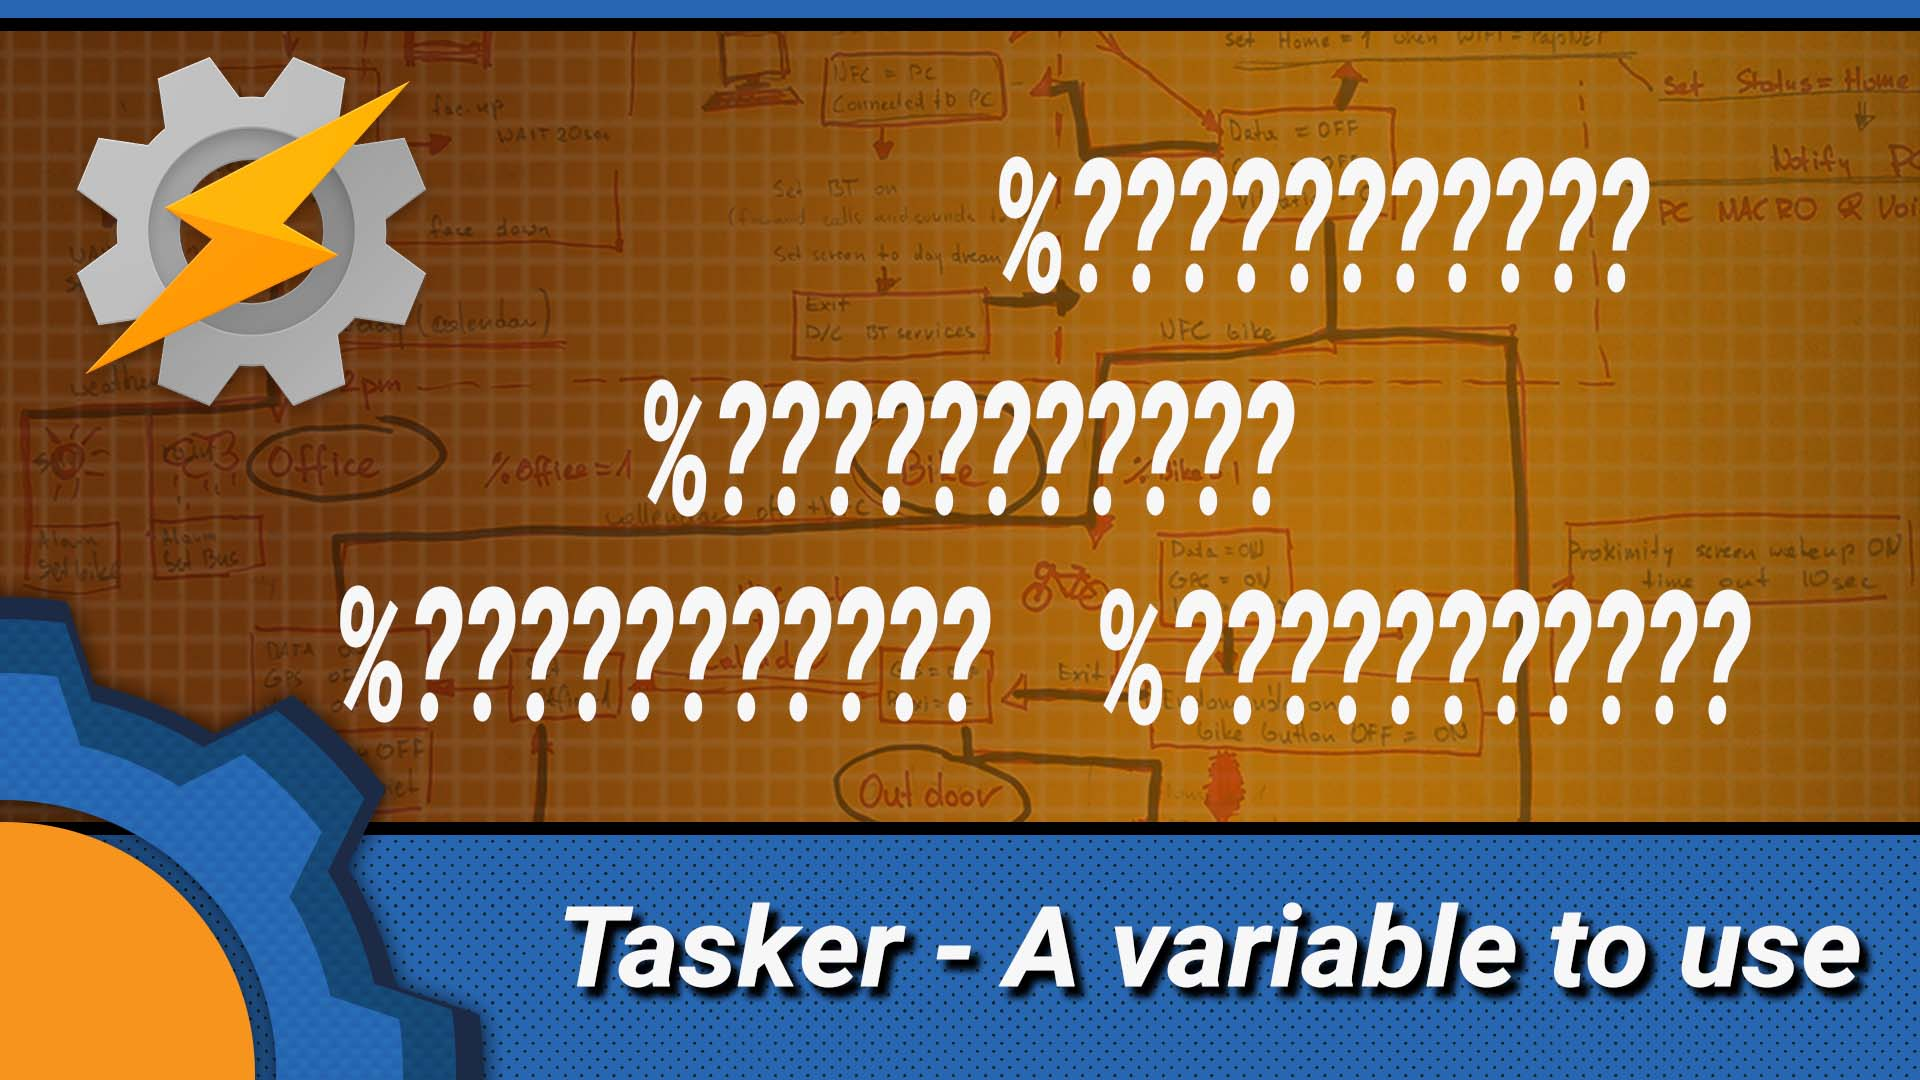 Tasker Variable, that you may not care for - Not Enough TECH